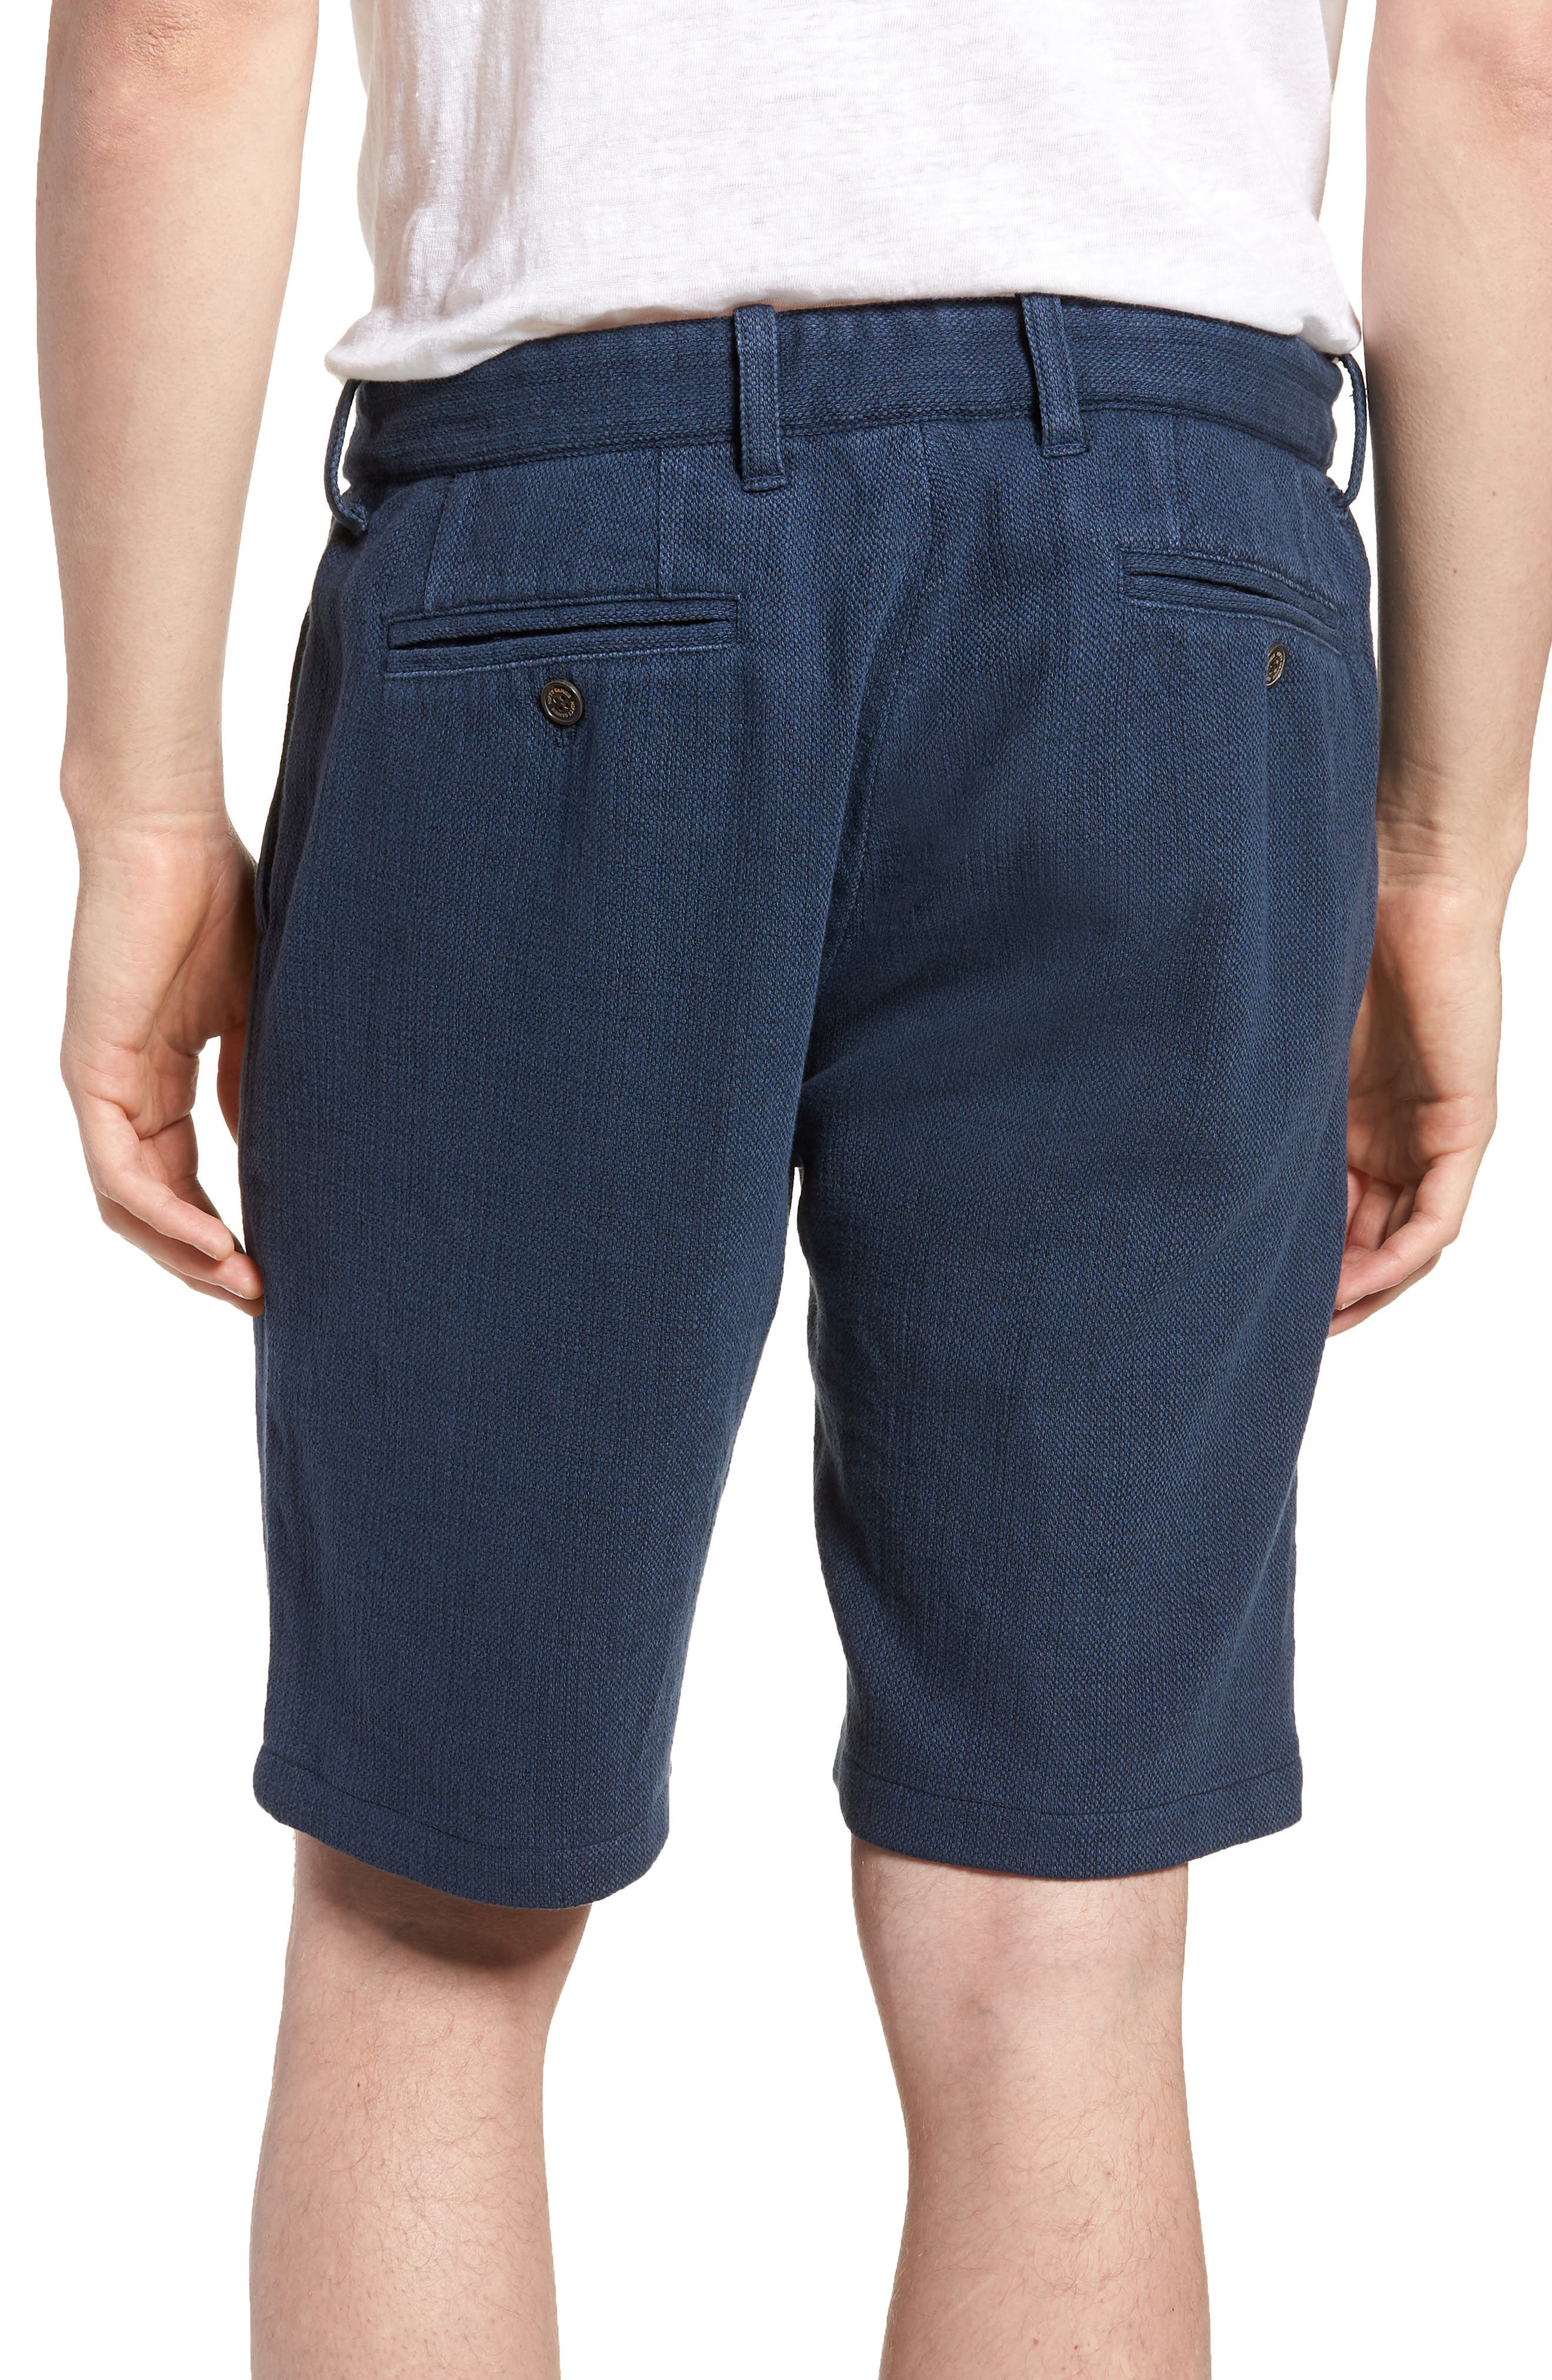 Thomas Regular Fit Pleated Shorts,                             Alternate thumbnail 2, color,                             Blue